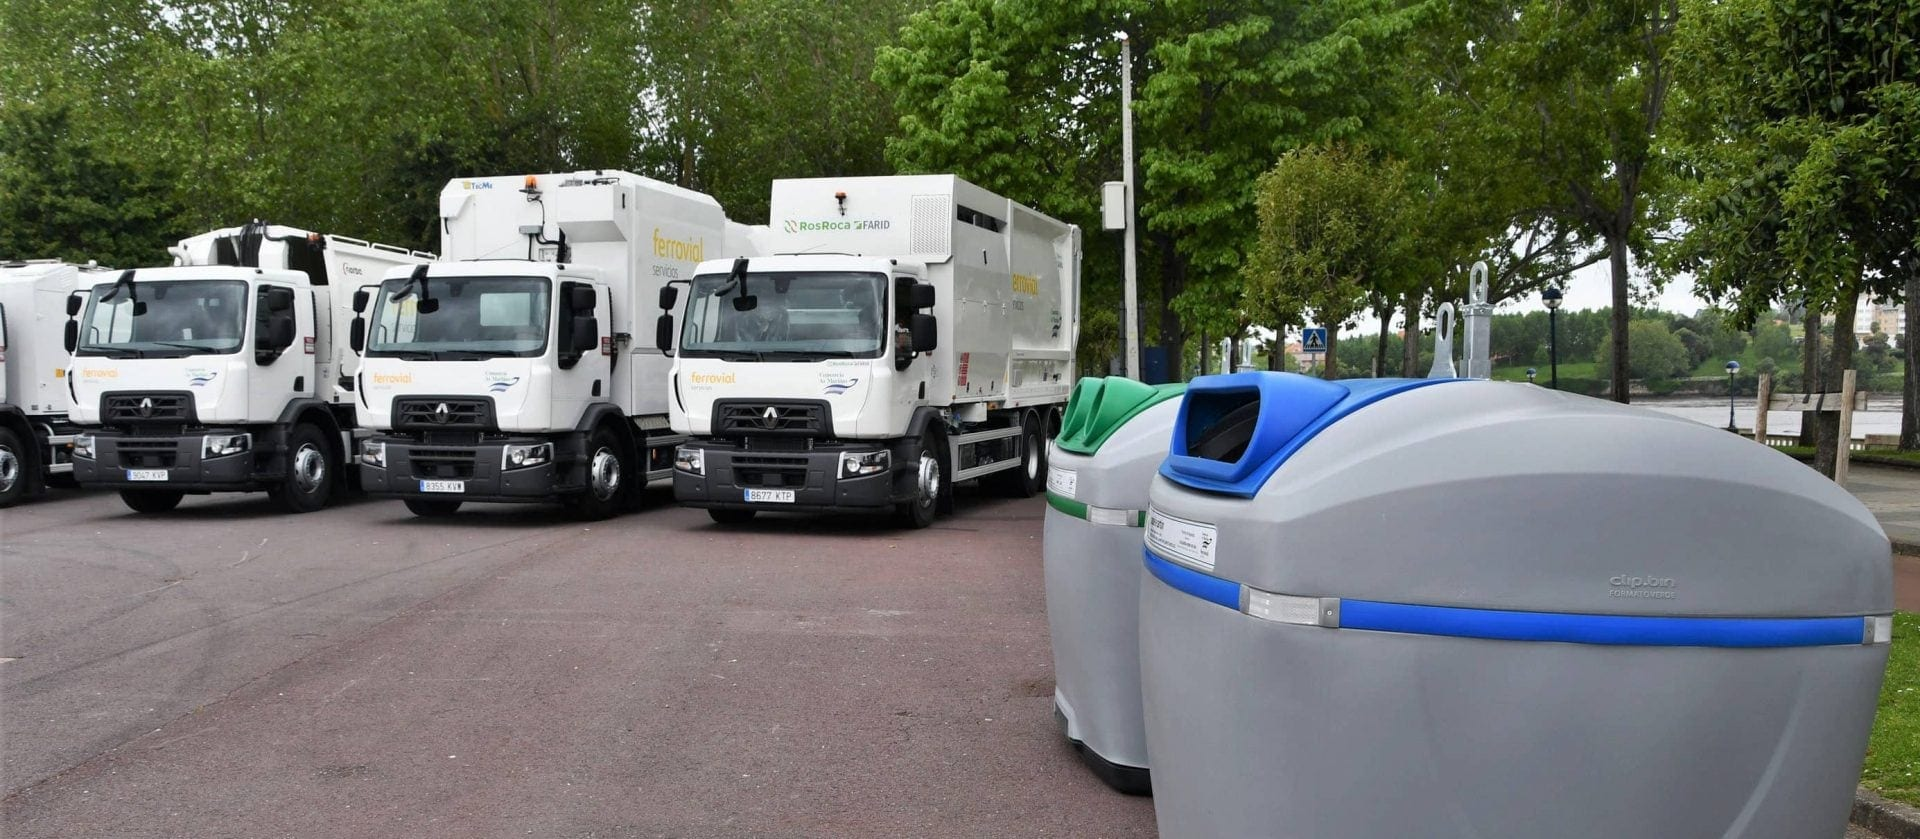 Ferrovial Services Adds Ten New Vehicles to Improve Waste Collection for The Eight Municipalities in The As Mariñas Consortium